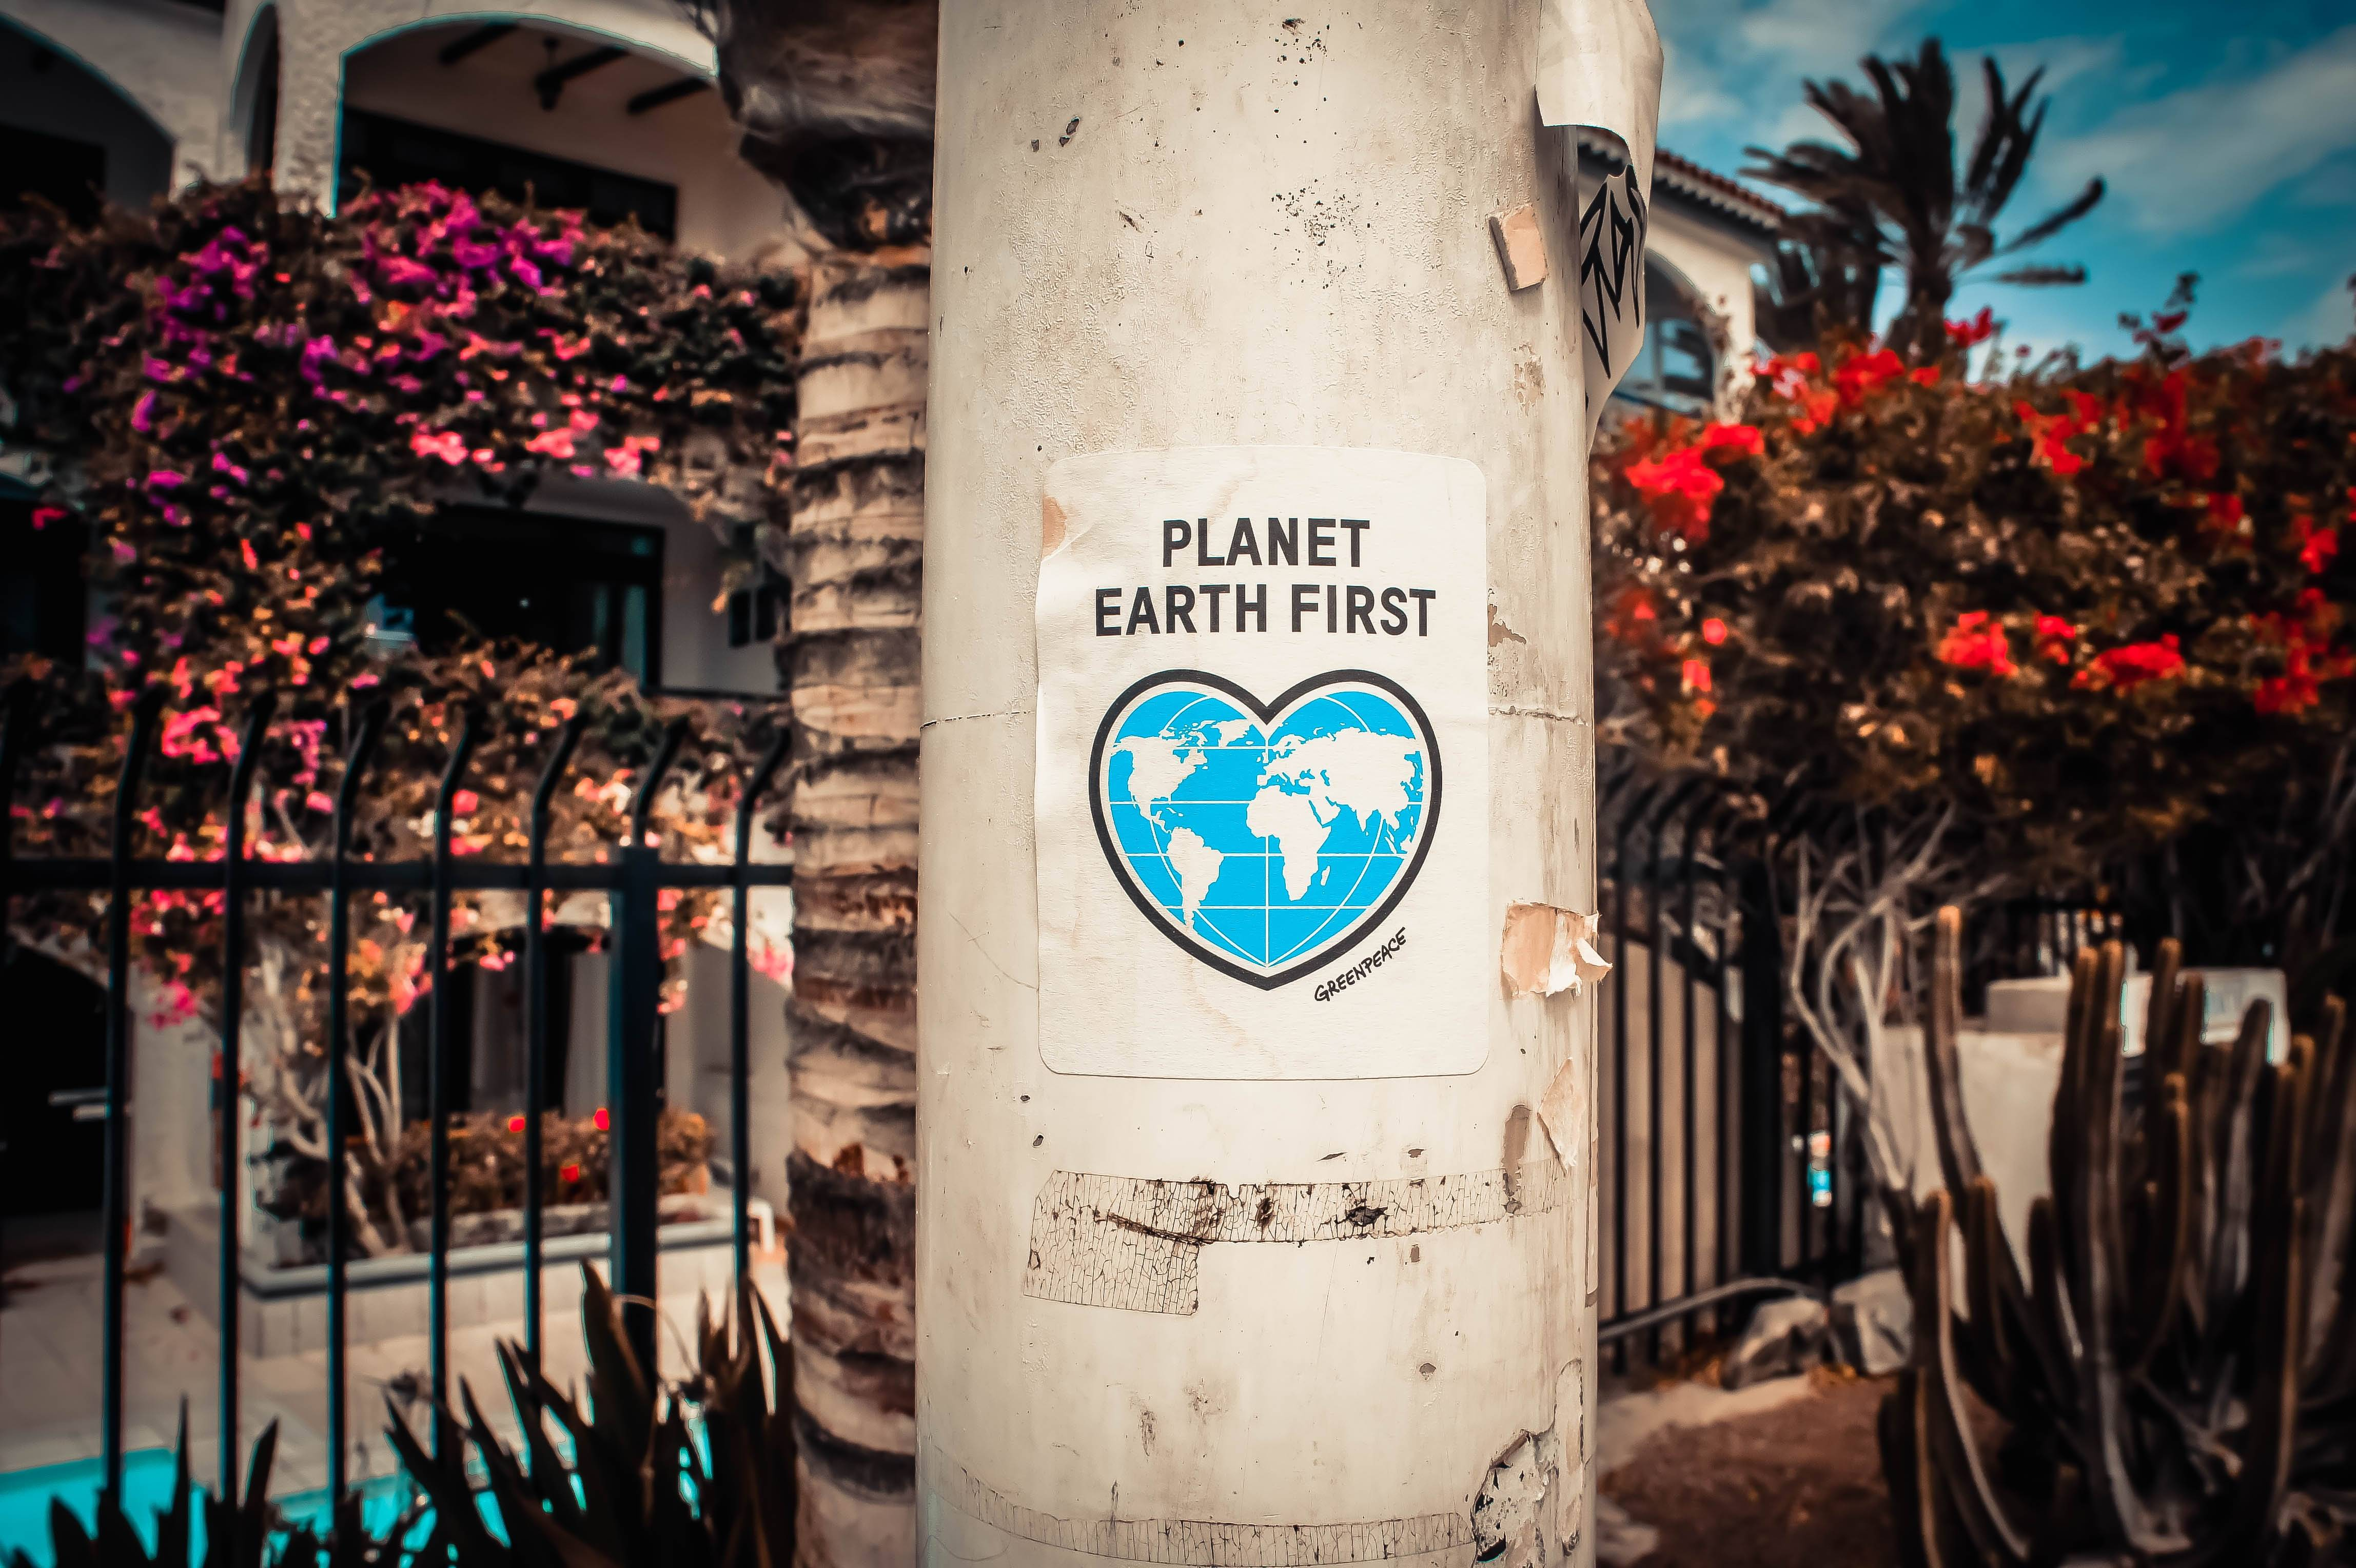 eco-friendly, climate change, environment footprint, environmental justice, environmental science, eco-friendly, green movement